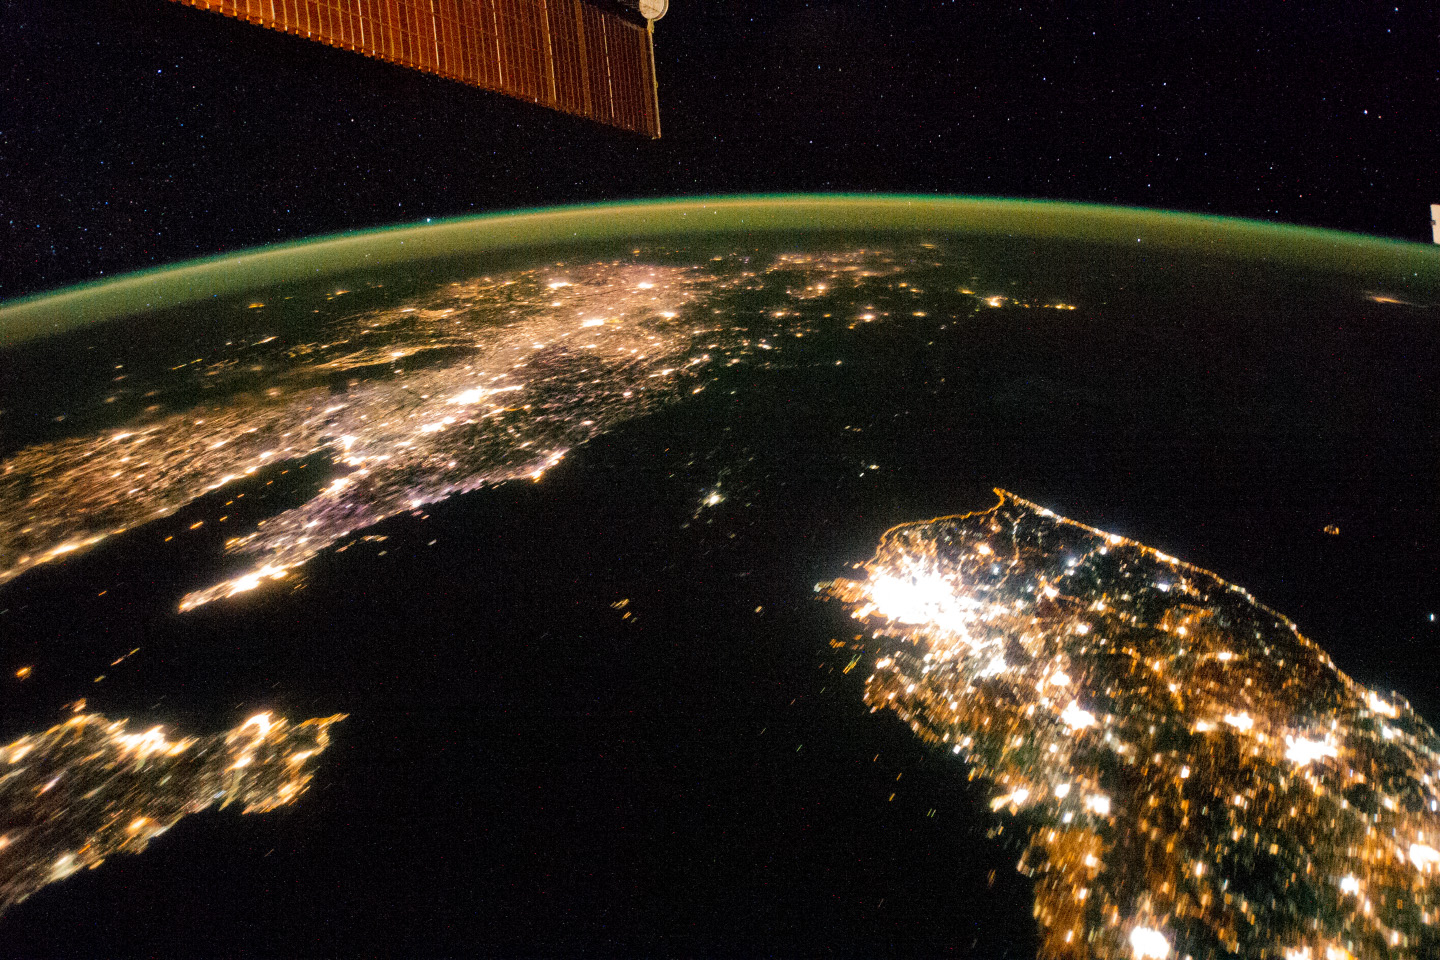 Lights Out for North Korea: Space Photo Reveals Country's Isolation